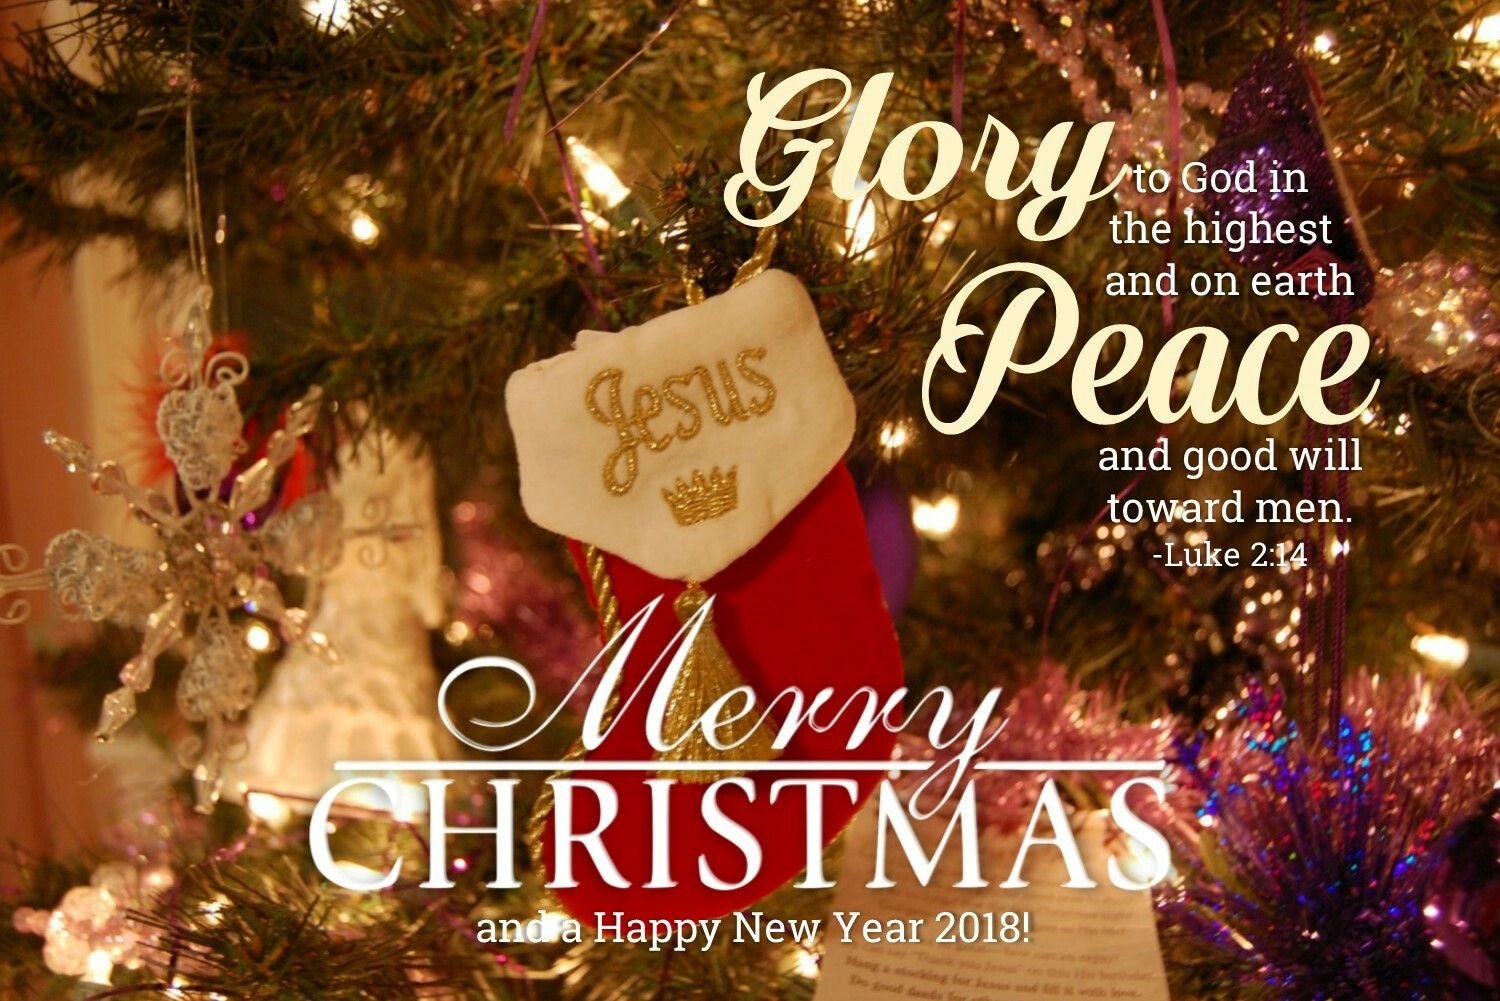 Glory to God in the highest. Peace on earth and good will towards men. Celebrate the season of ...